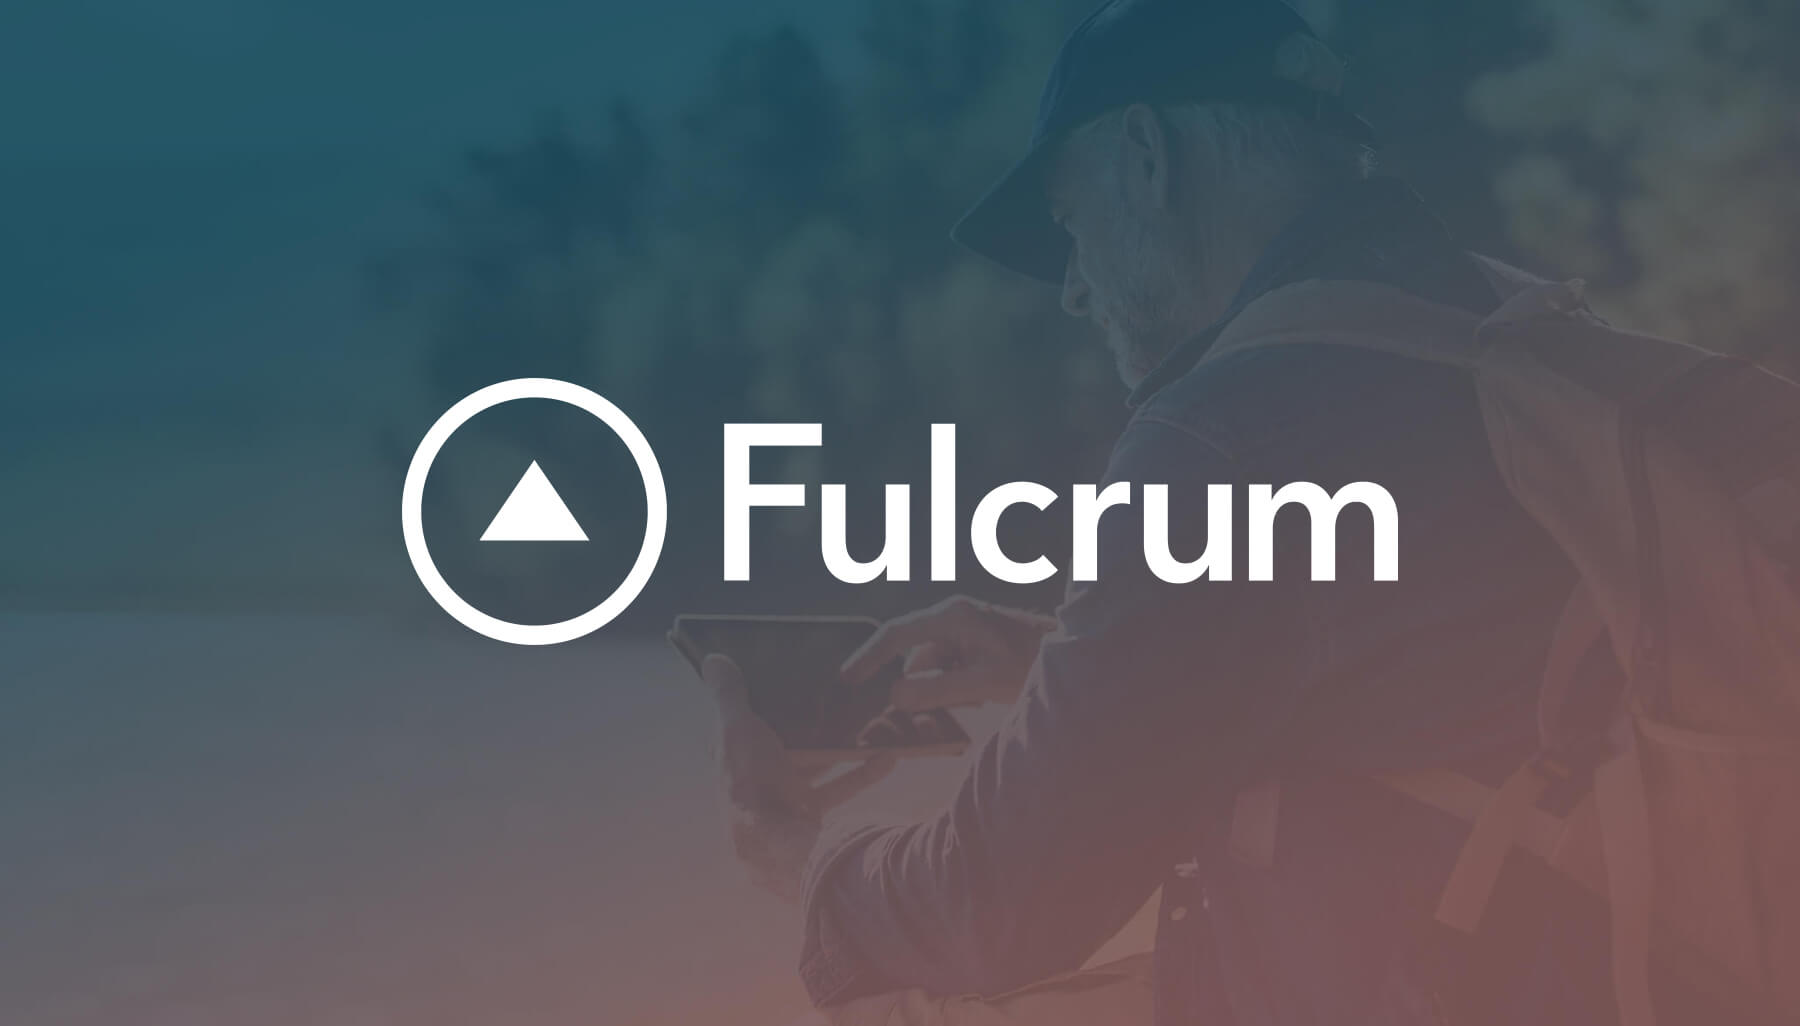 The New Look of Fulcrum